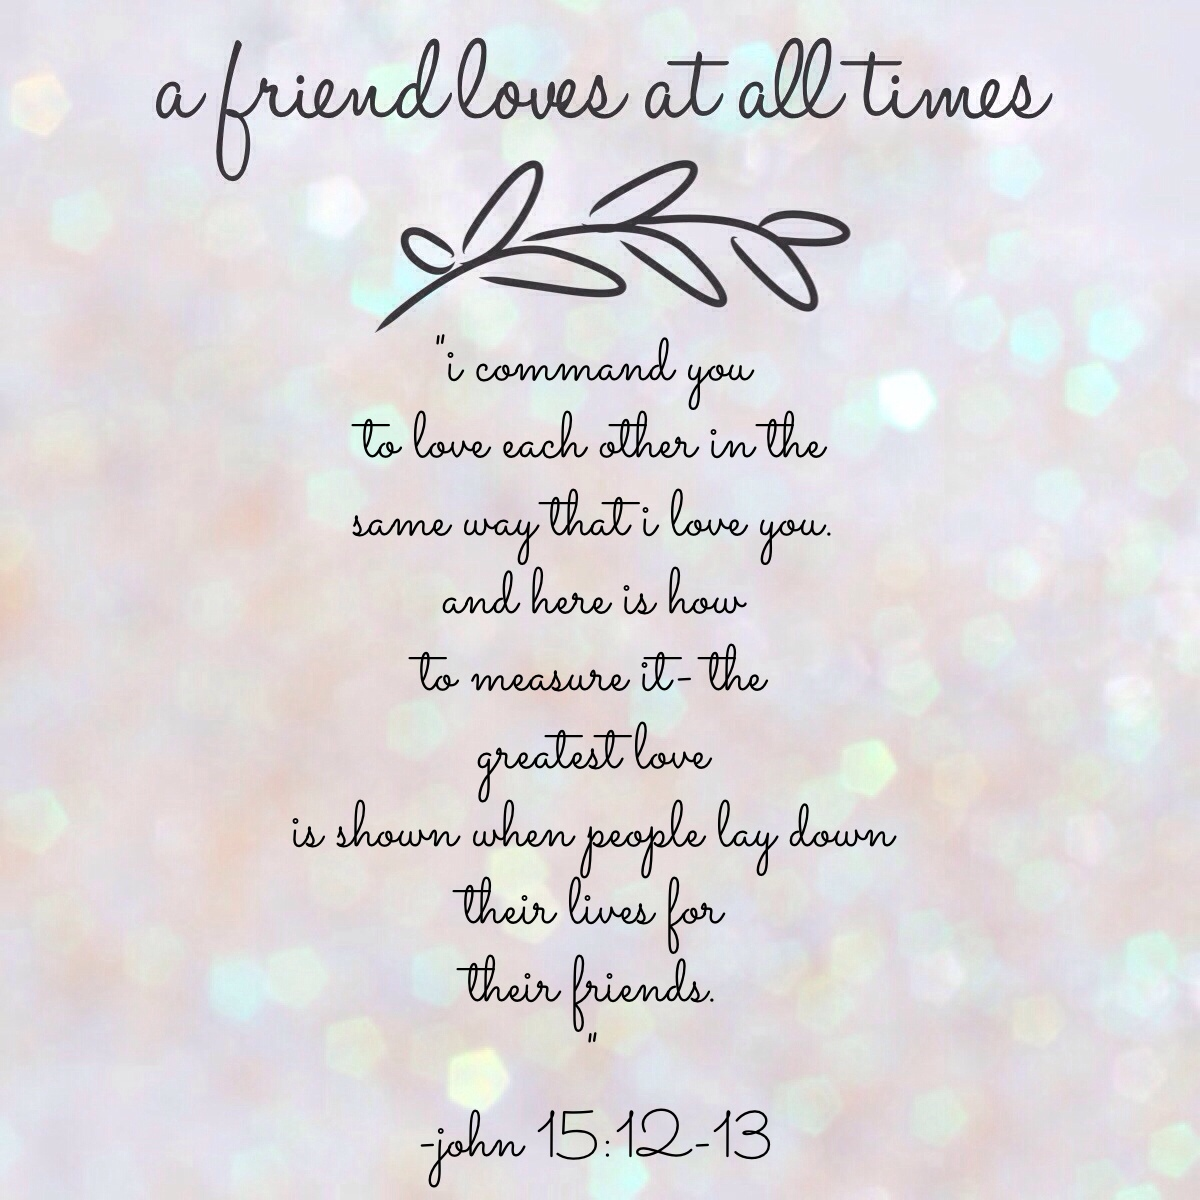 Bible Verse For A Freind: Will You Be My Reliable Friend?